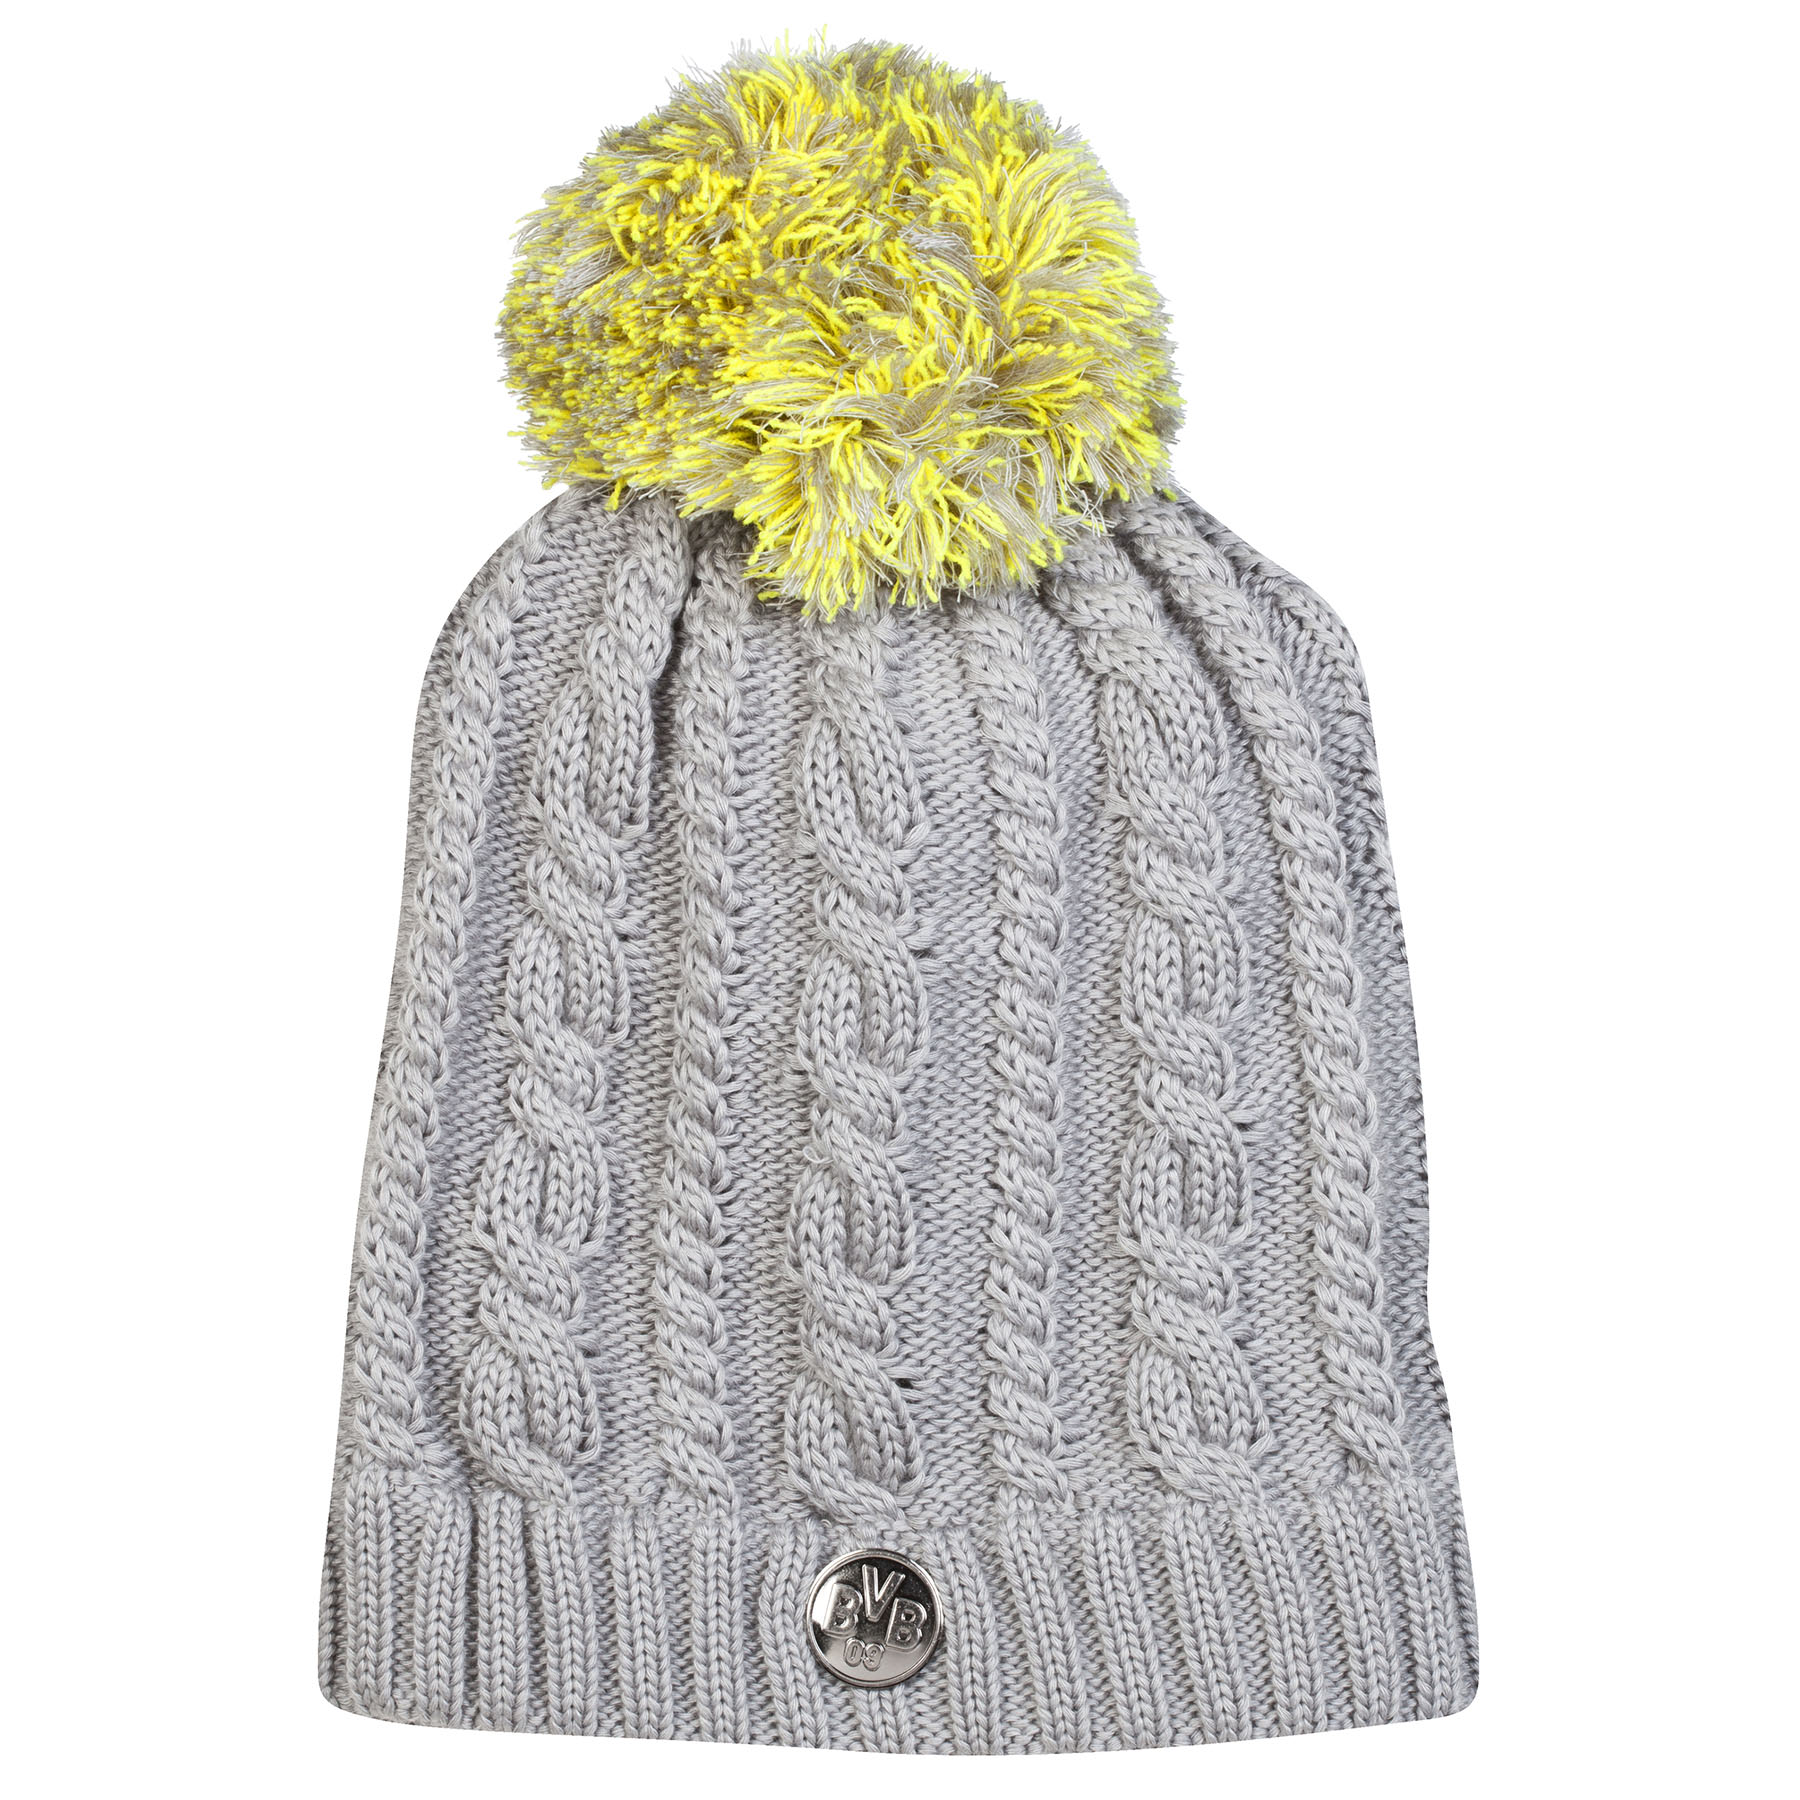 BVB Bobble Beanie Hat - Grey